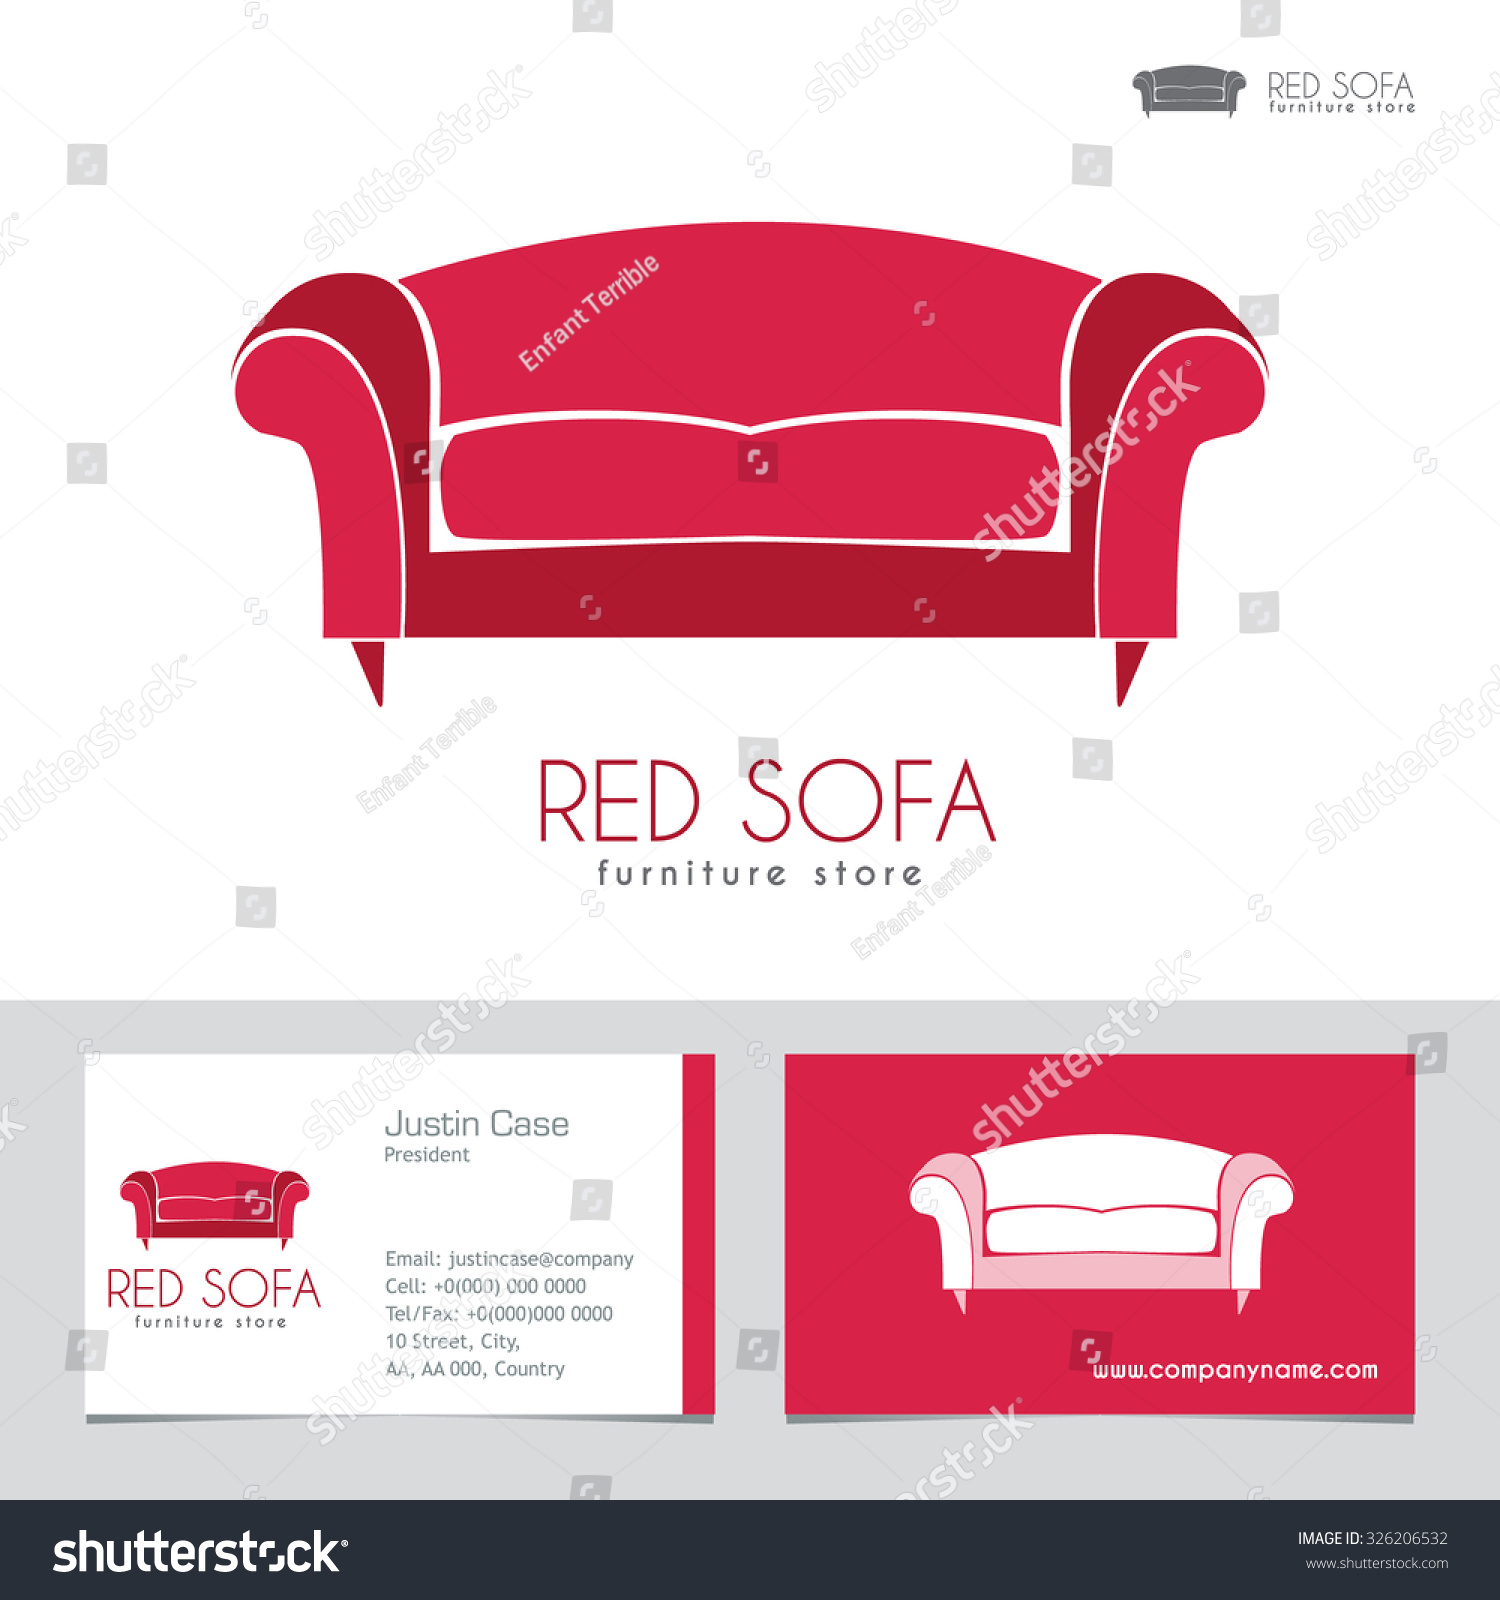 Sofa business sign business card vector stock vector 326206532 sofa business sign business card vector template for furniture store home decor boutique colourmoves